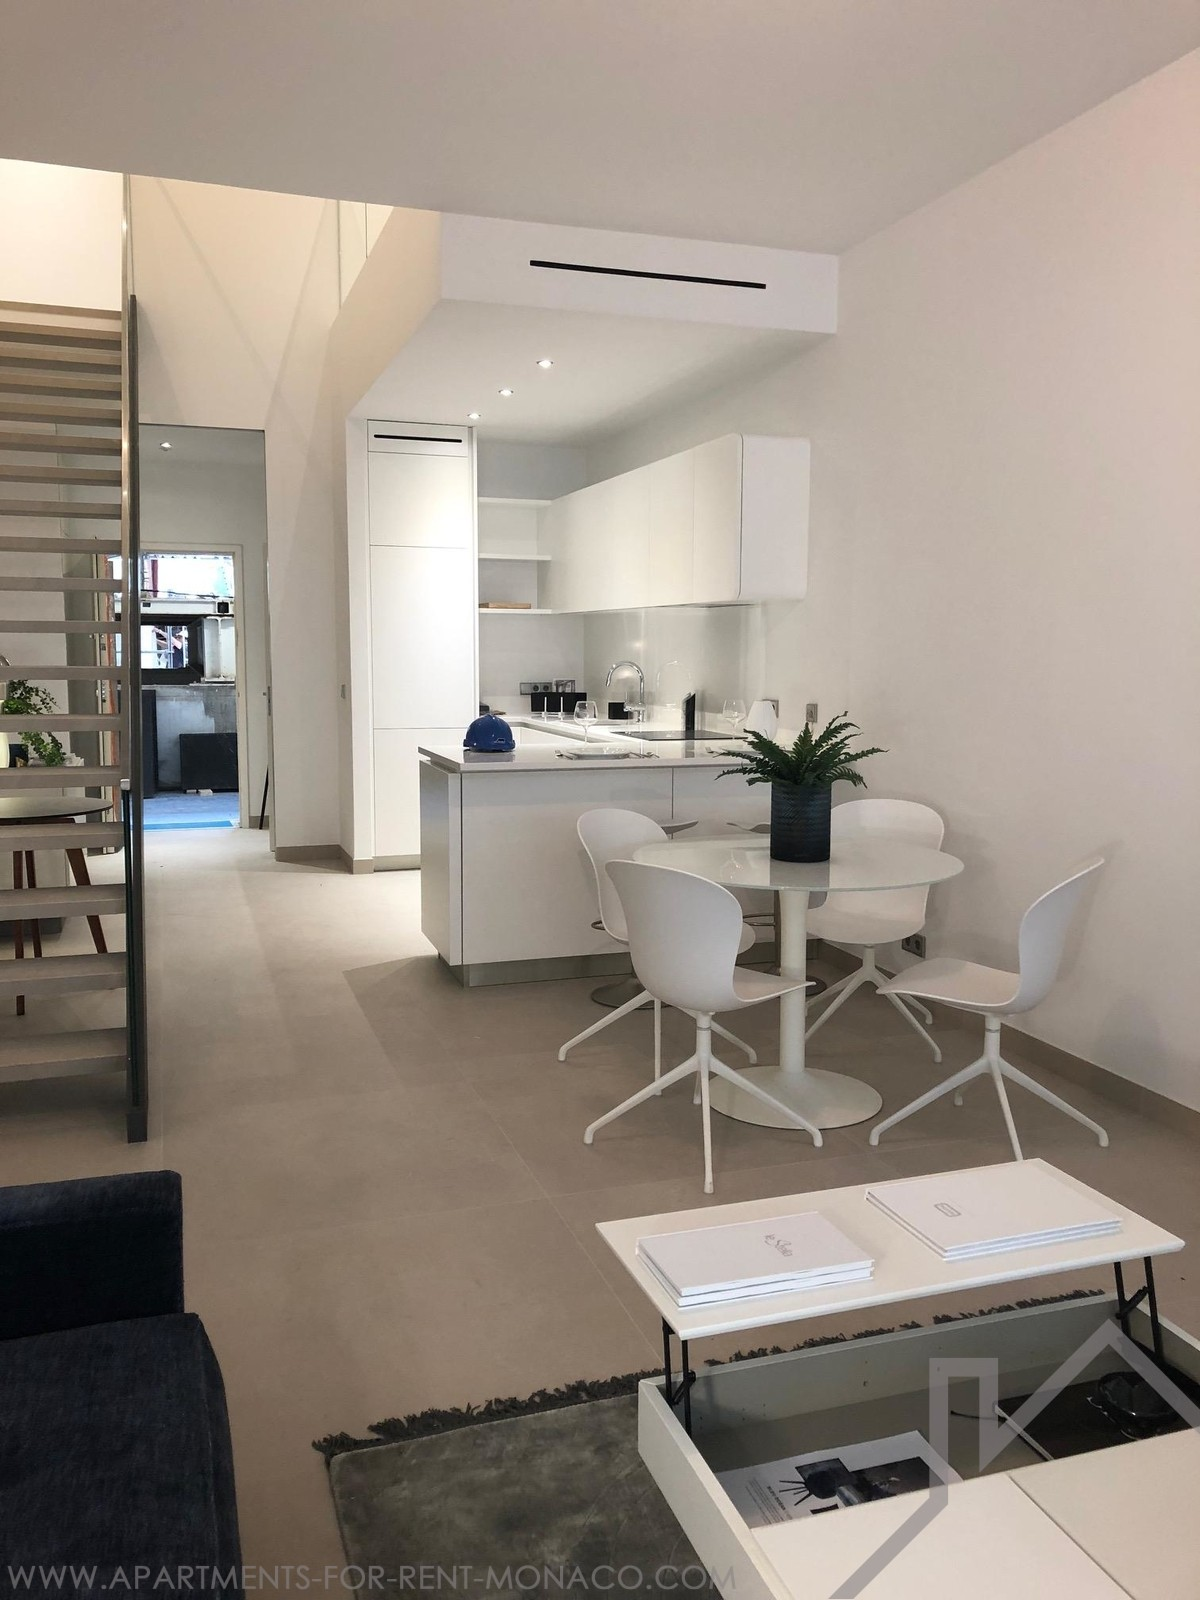 LE STELL ONE BEDROOM DUPLEX APARTMENT FOR RENT - Apartments for rent in Monaco